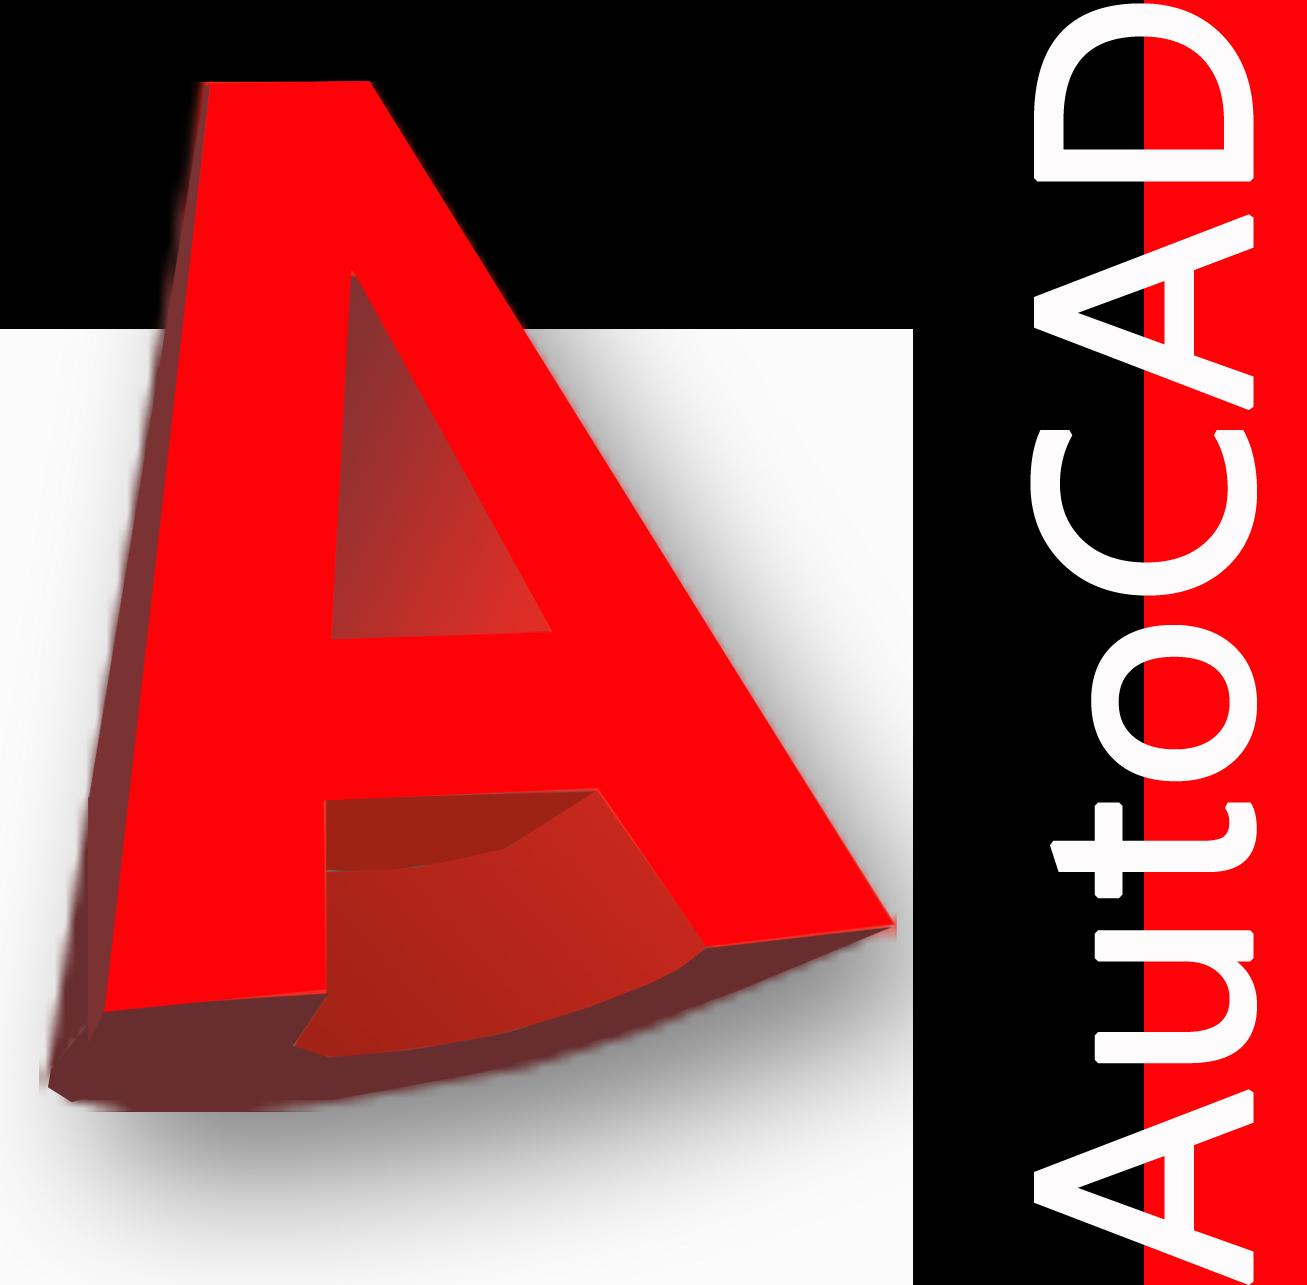 Autocad Logo Wallpaper